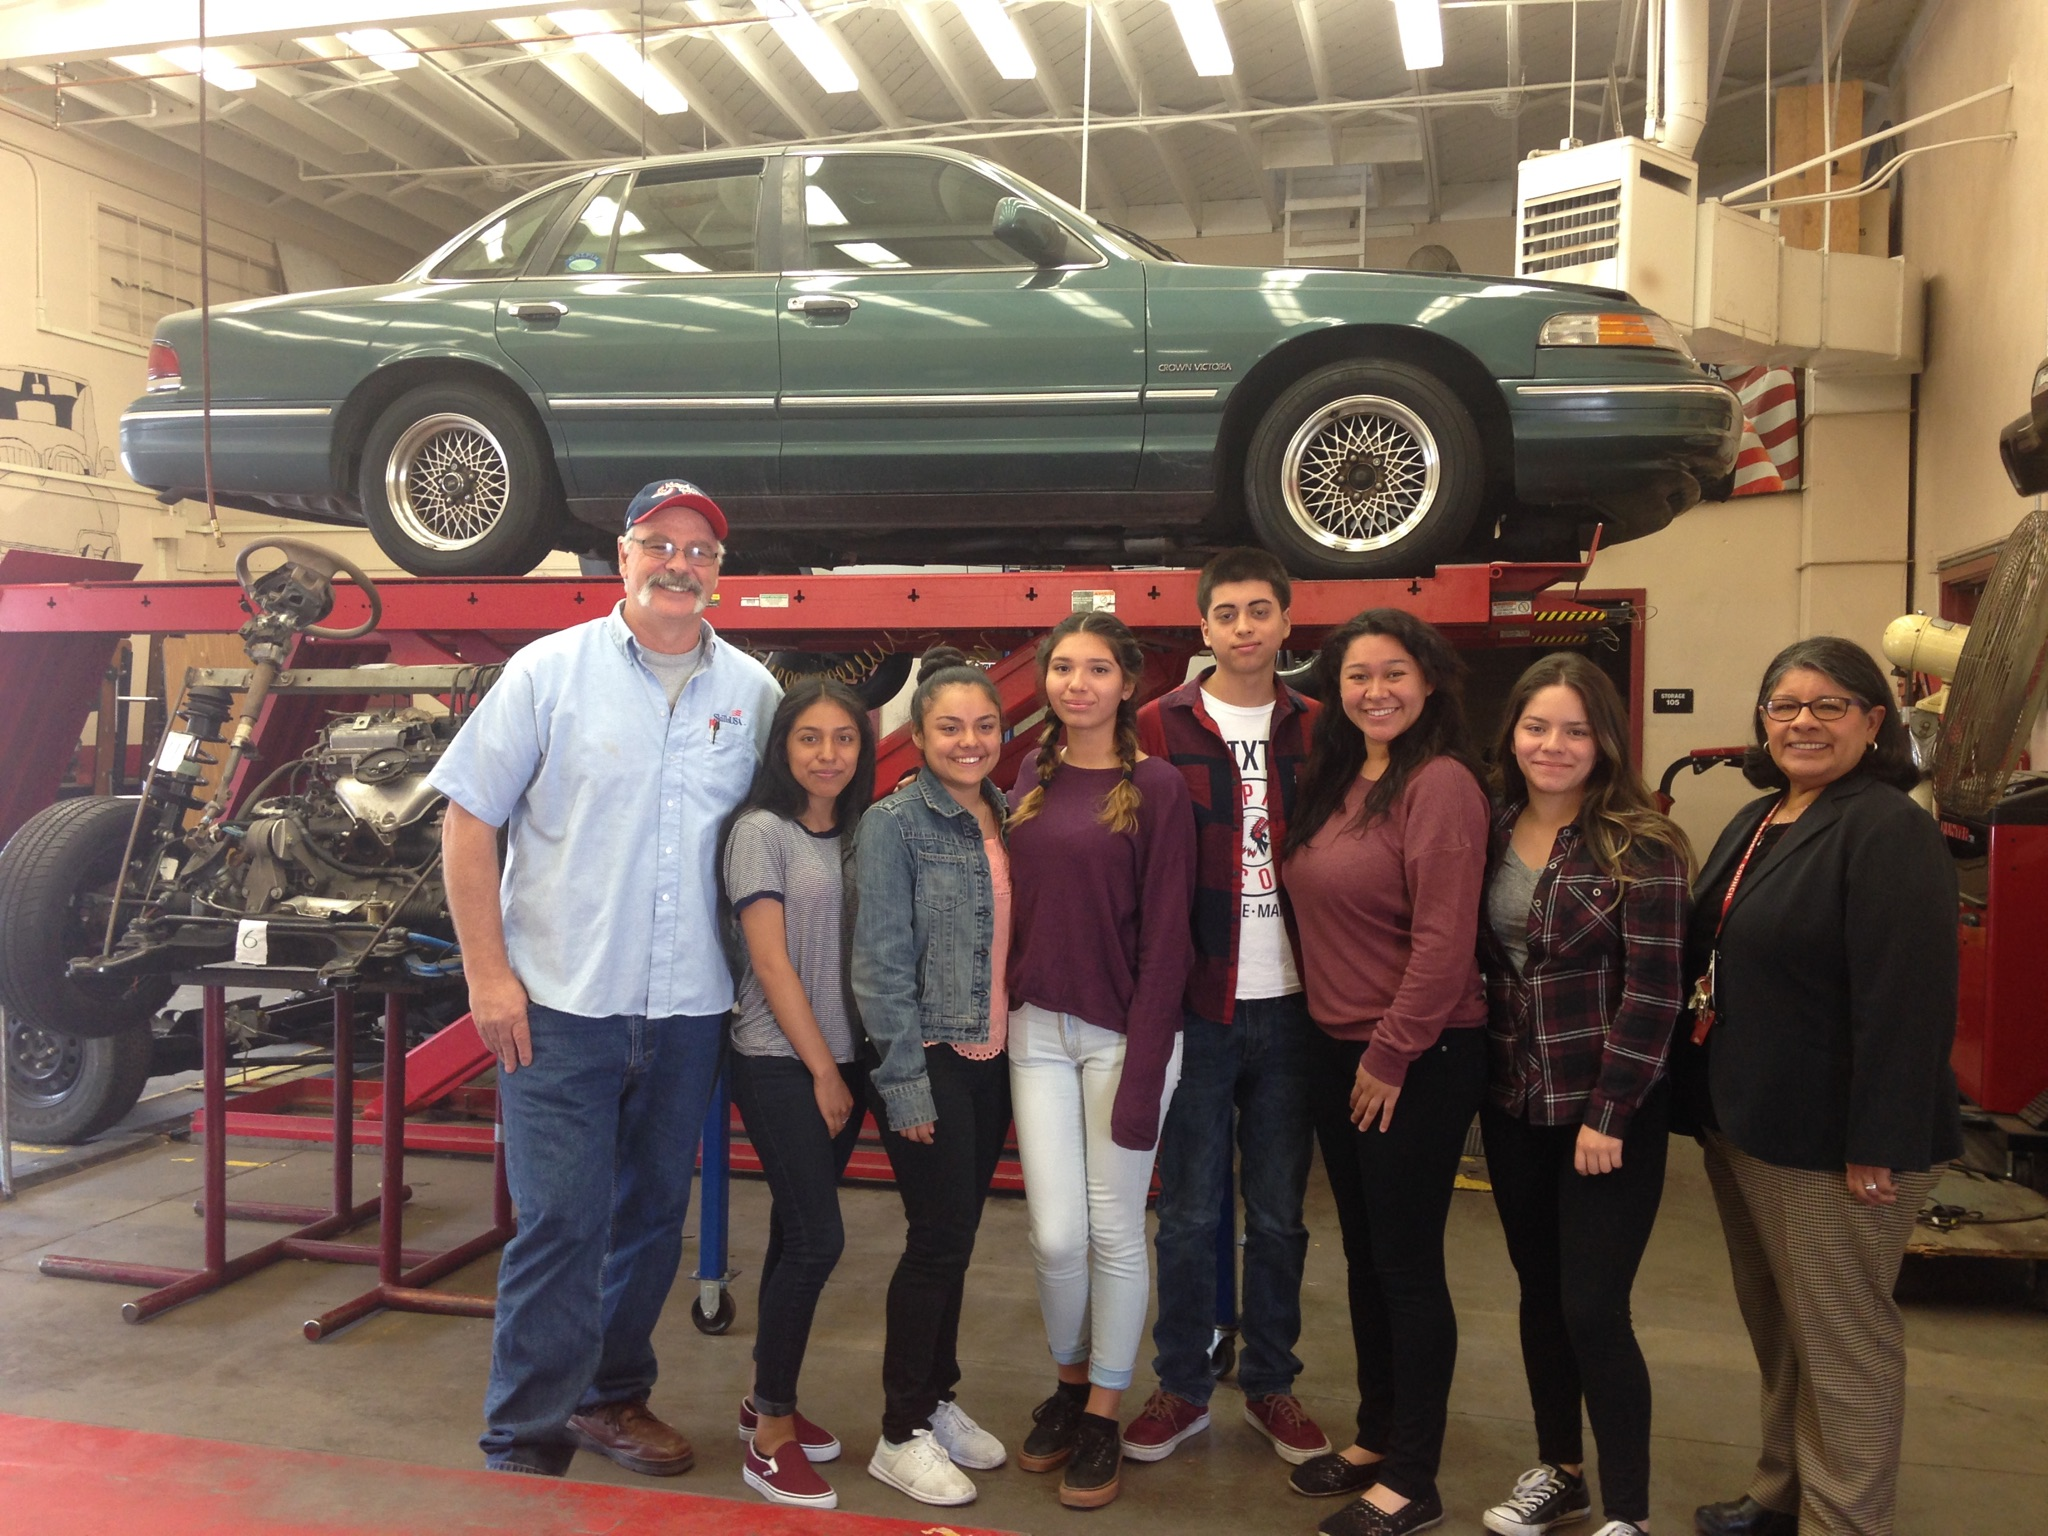 Joseph Agruso has been teaching automotive classes at Van Nuys High School for a dozen years. Here he poses with several of his students.